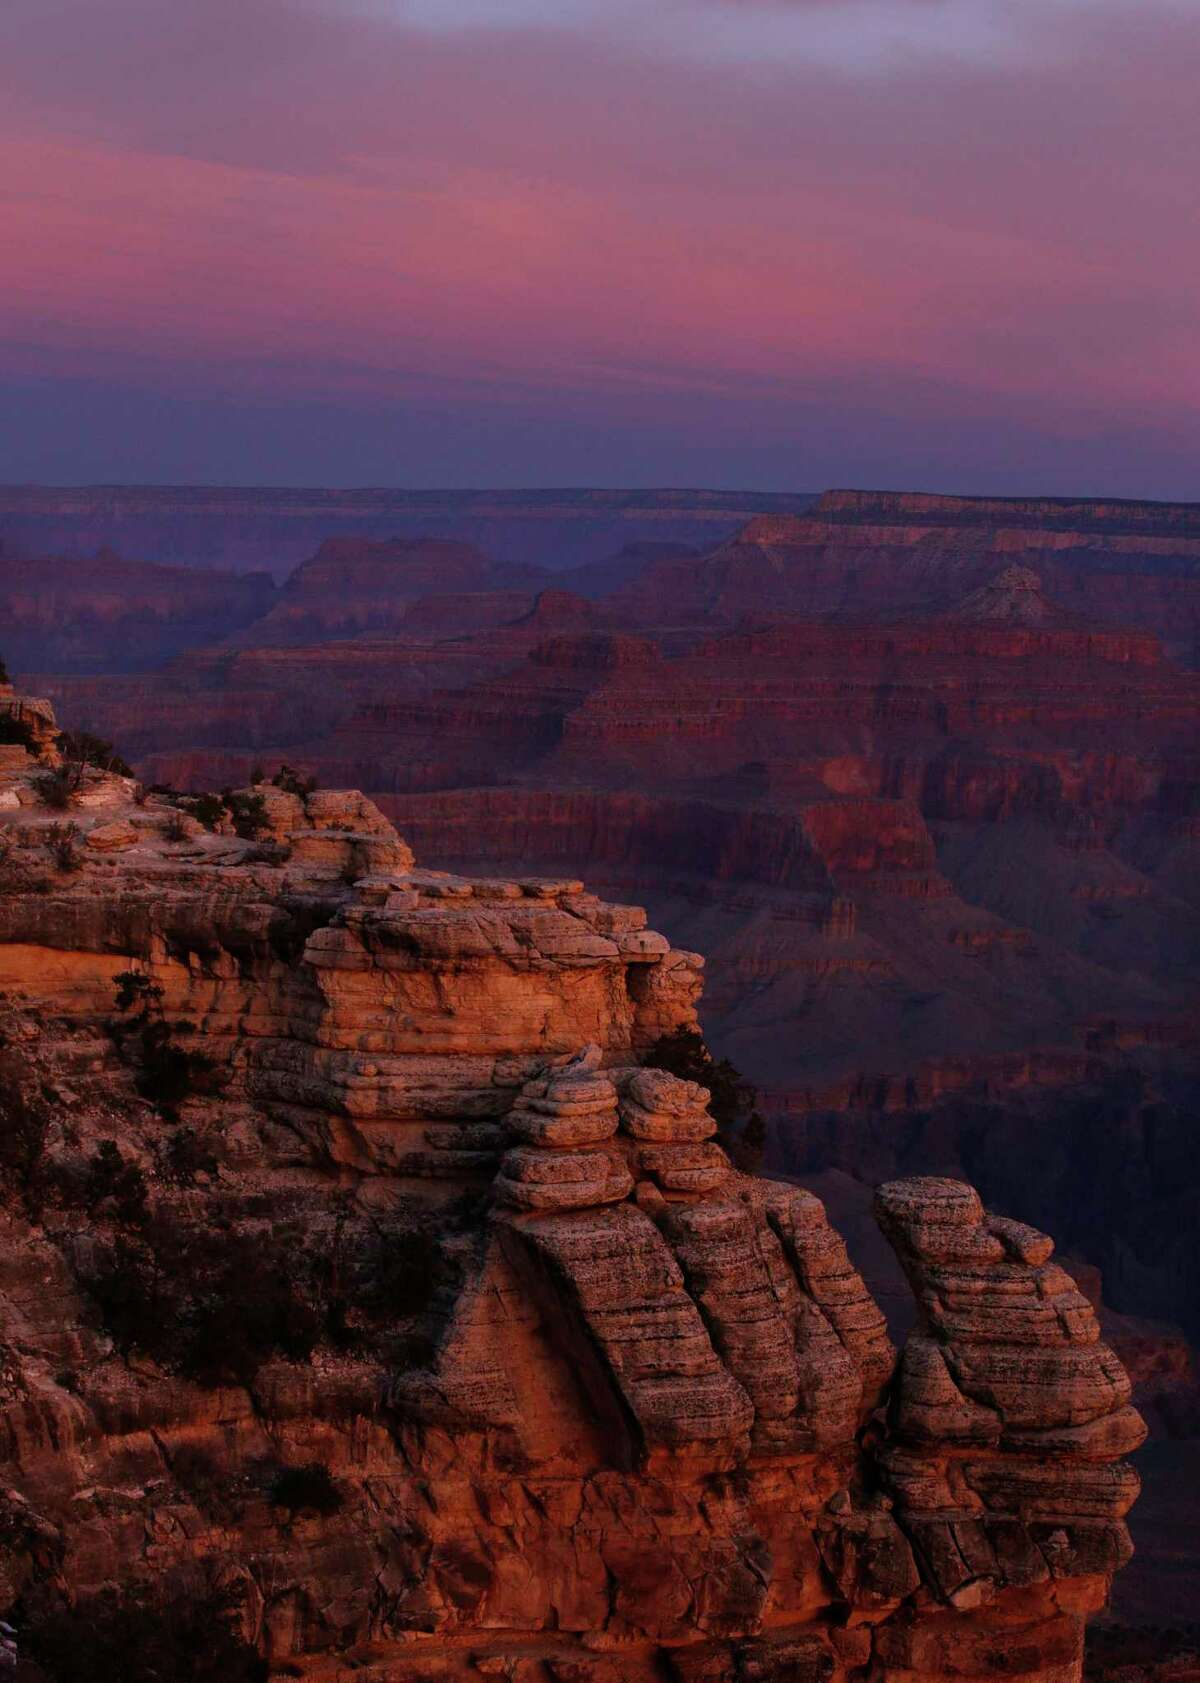 The colors of dawn begin to paint the age-old rock formations of the Grand Canyon along the South Rim near Mather Point on March 11, 2015. Many national parks are so far remaining open during the coronavirus pandemic. (Mark Boster/Los Angeles Times/TNS)